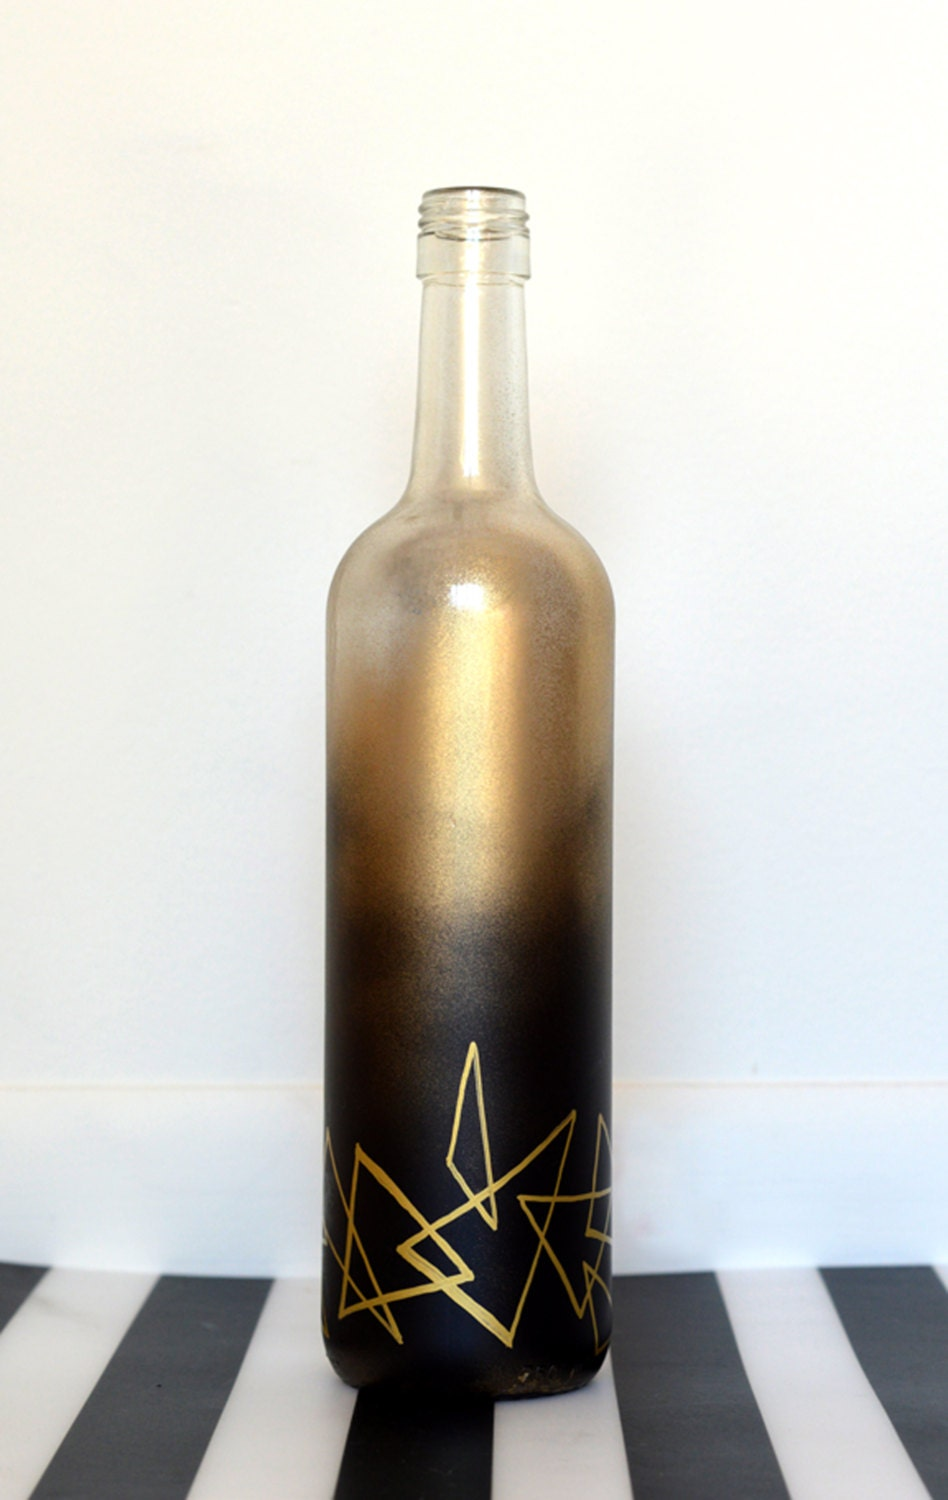 decorative wine bottle spray painted with hand drawn design. Black Bedroom Furniture Sets. Home Design Ideas